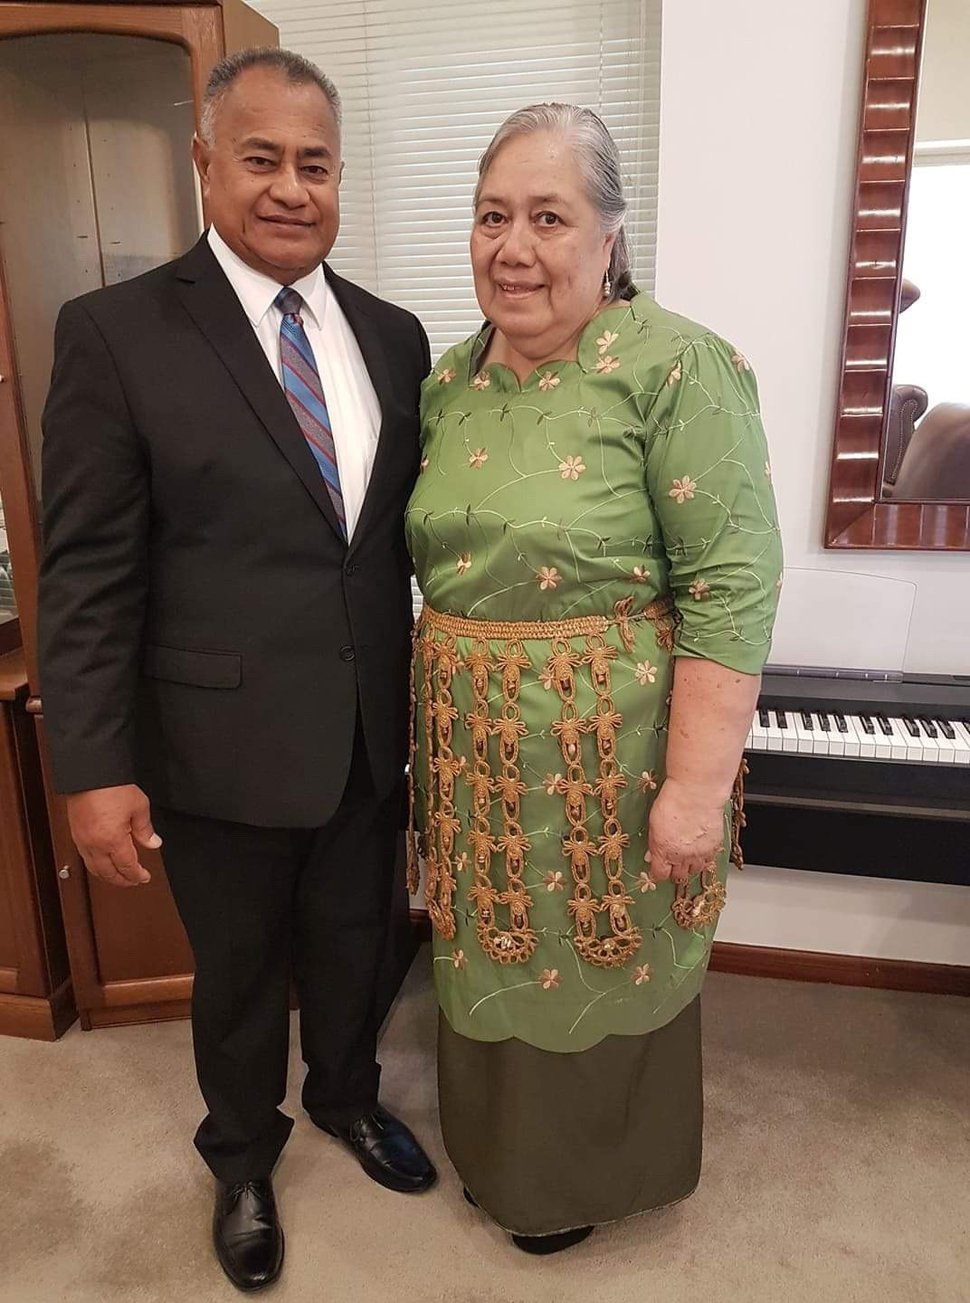 (Photo courtesy of The Church of Jesus Christ of Latter-day Saints) Taniela A. Langi and his wife, 'Anaseini V. Langi. Taniela, president of the Nuku'alofa Tonga Temple, died Sept. 5.